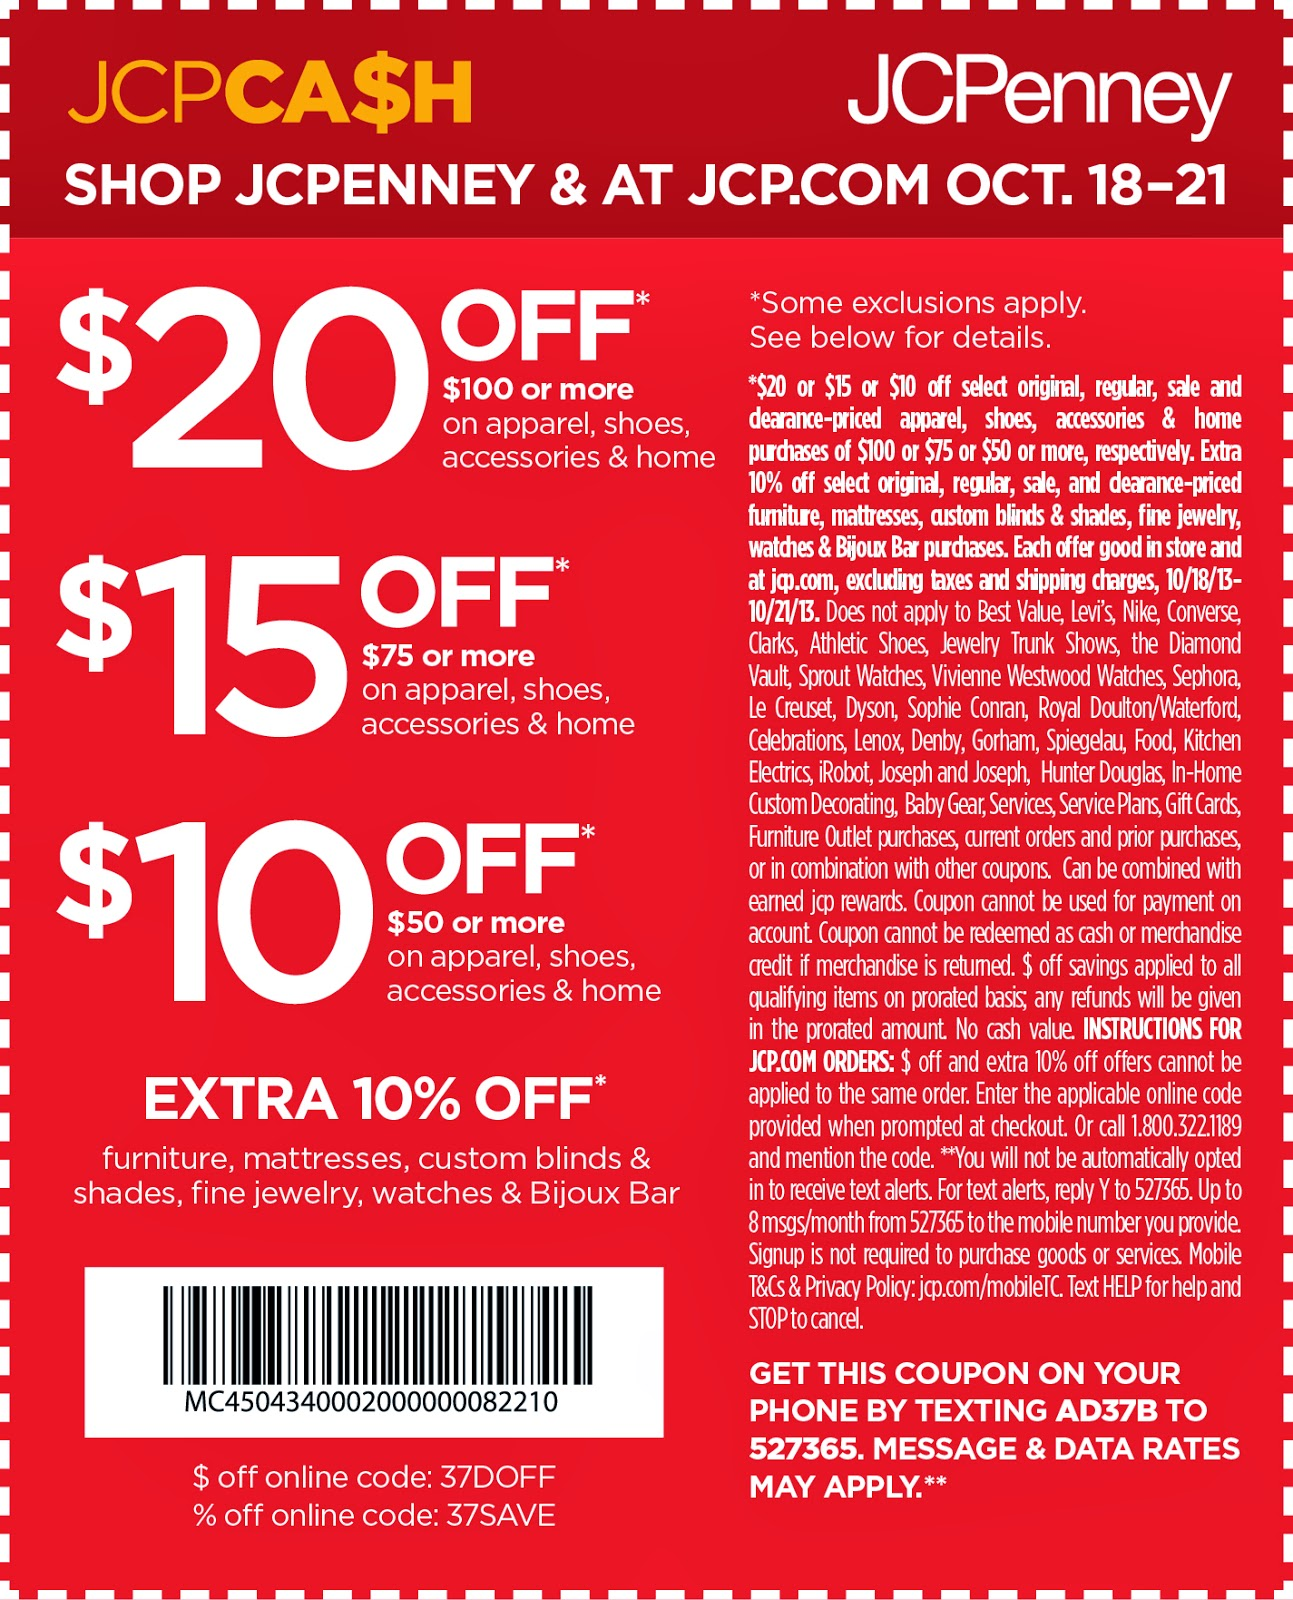 Deb shops coupons in store